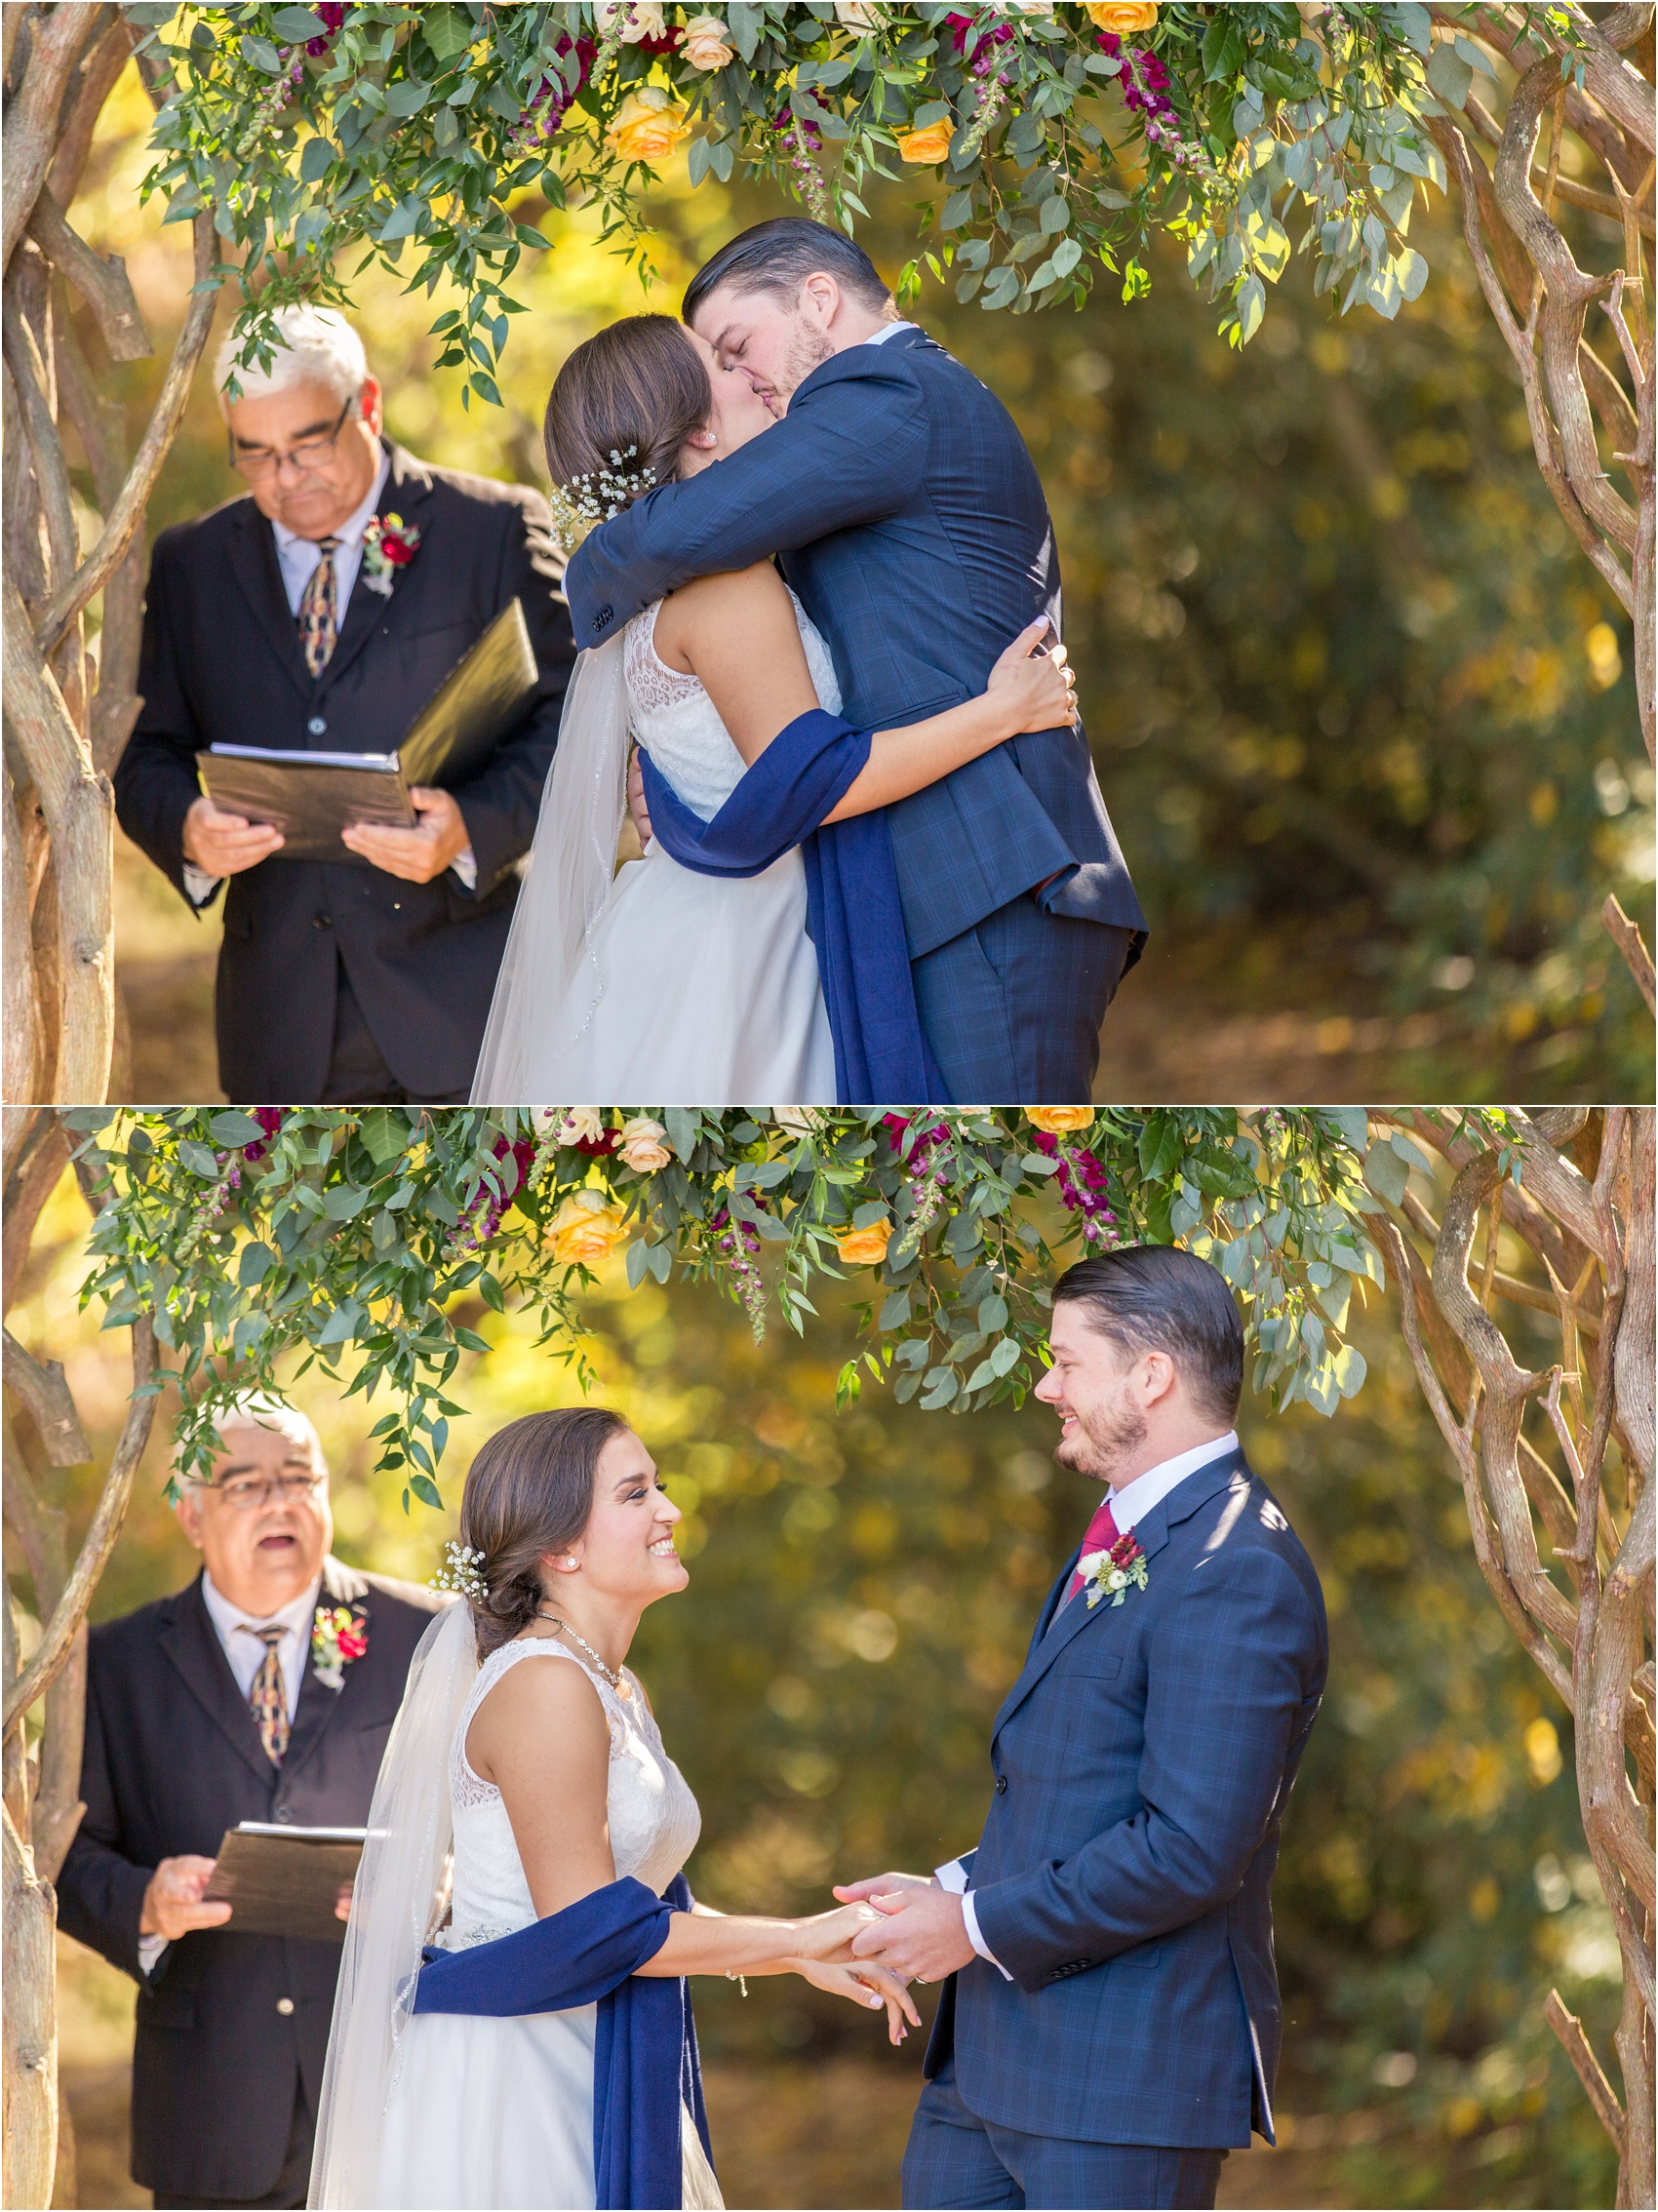 Savannah Eve Photography- McGeary-Epp Wedding- Sneak Peek-43.jpg